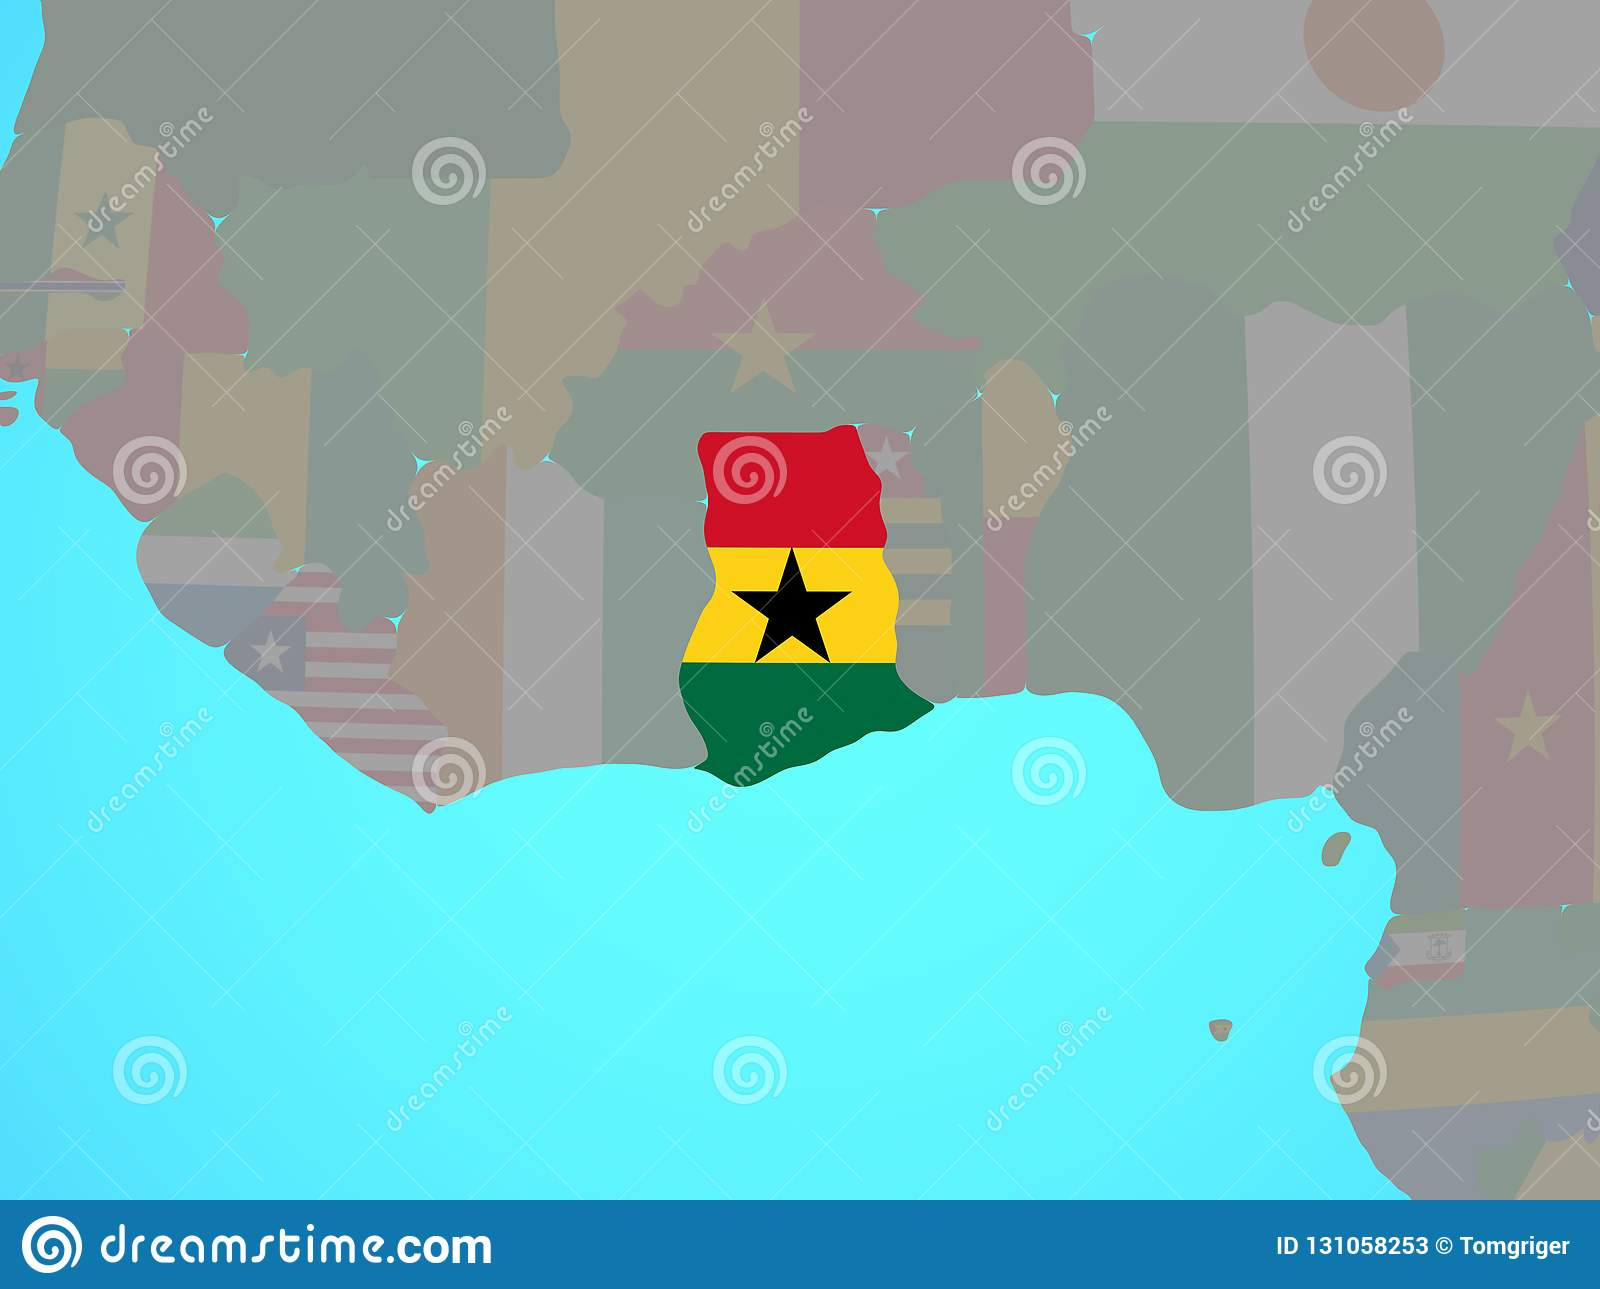 Ghana with flag on map stock illustration. Illustration of ... on mauritania on map, nepal on map, guatemala on map, west africa map, borneo on map, egypt on map, belize on map, mali on map, madagascar on map, liberia on map, hungary on map, brazil on map, cuba on map, benin on map, zimbabwe on map, italy on map, indonesia on map, the gambia on map, nigeria on map, thailand on map,